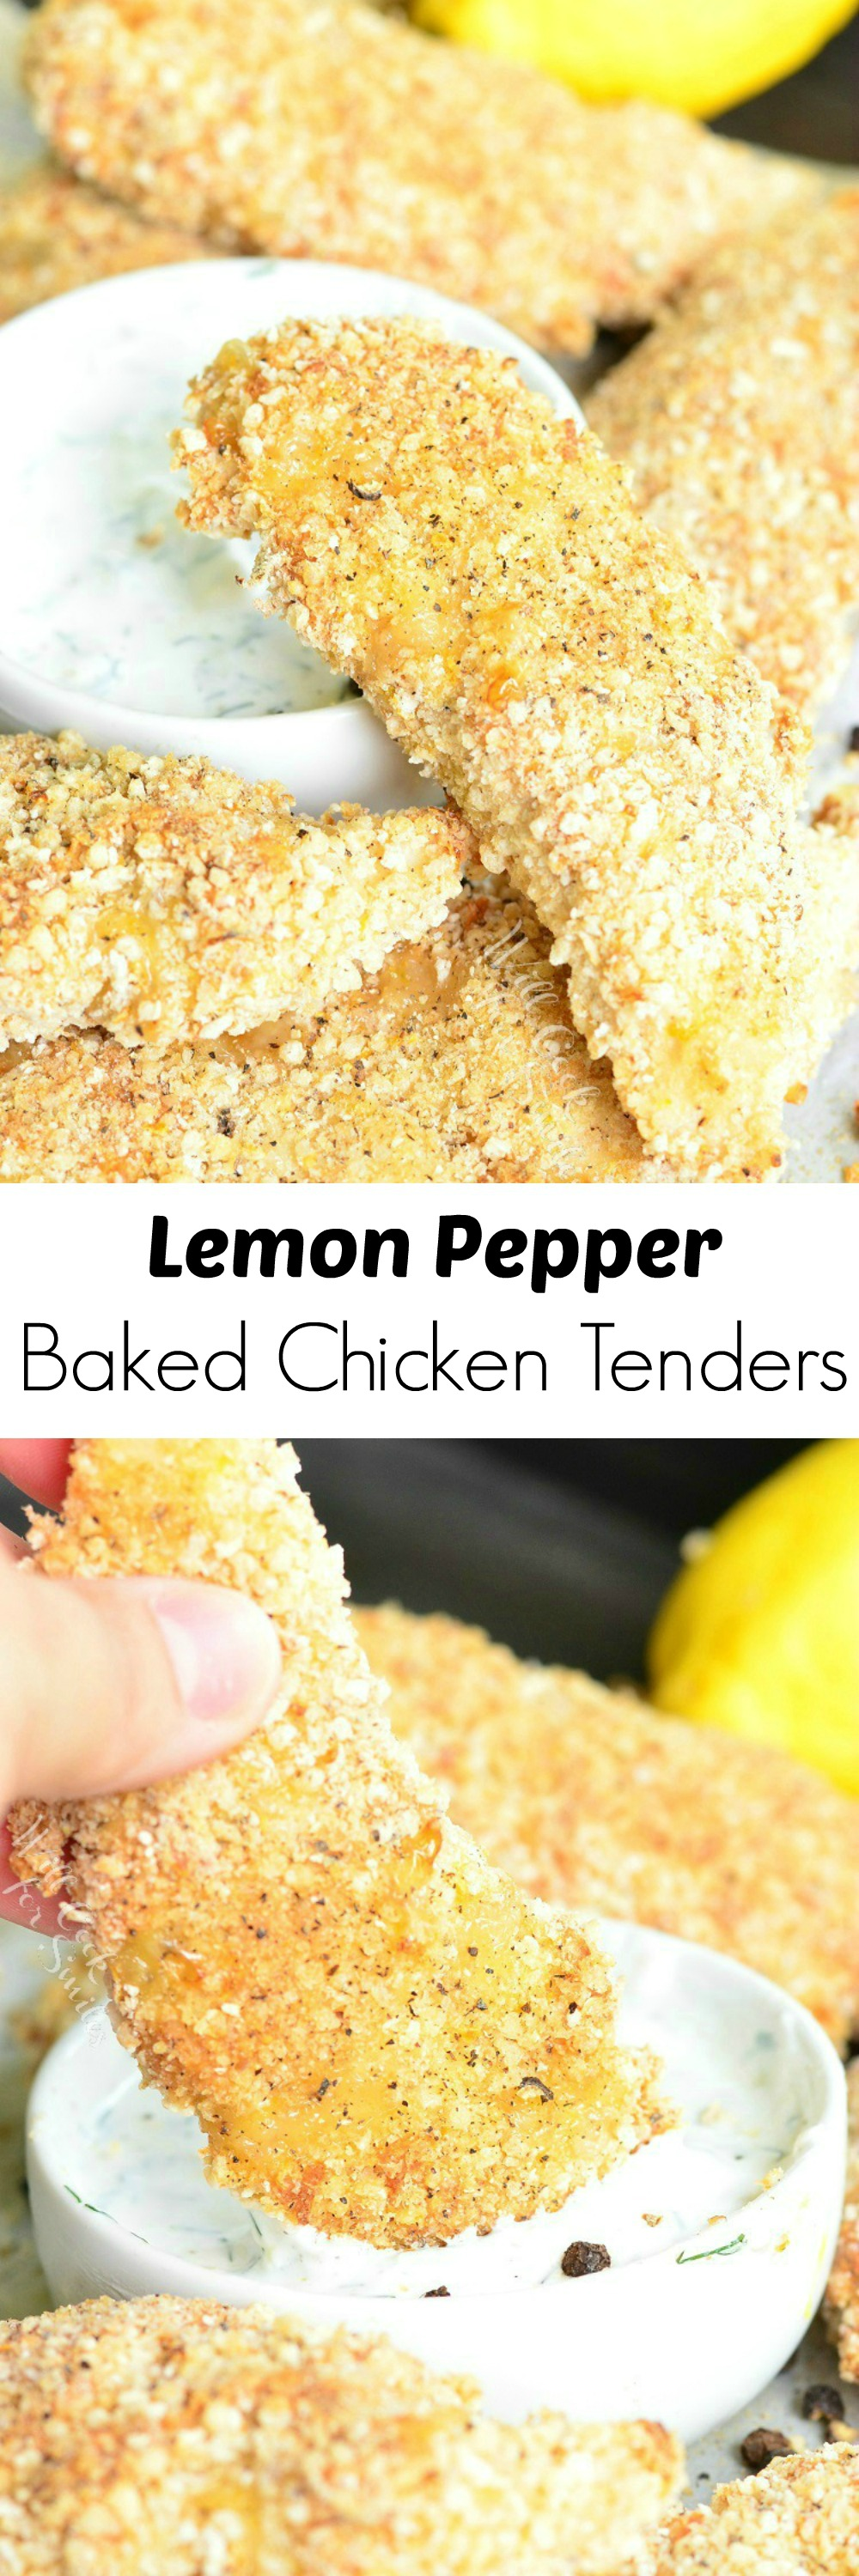 Lemon Pepper Baked Chicken Tenders. (A Gluten Free Recipe.) Juicy, crispy chicken tenders baked in the oven with gluten free bread crumbs and lemon pepper seasoning.